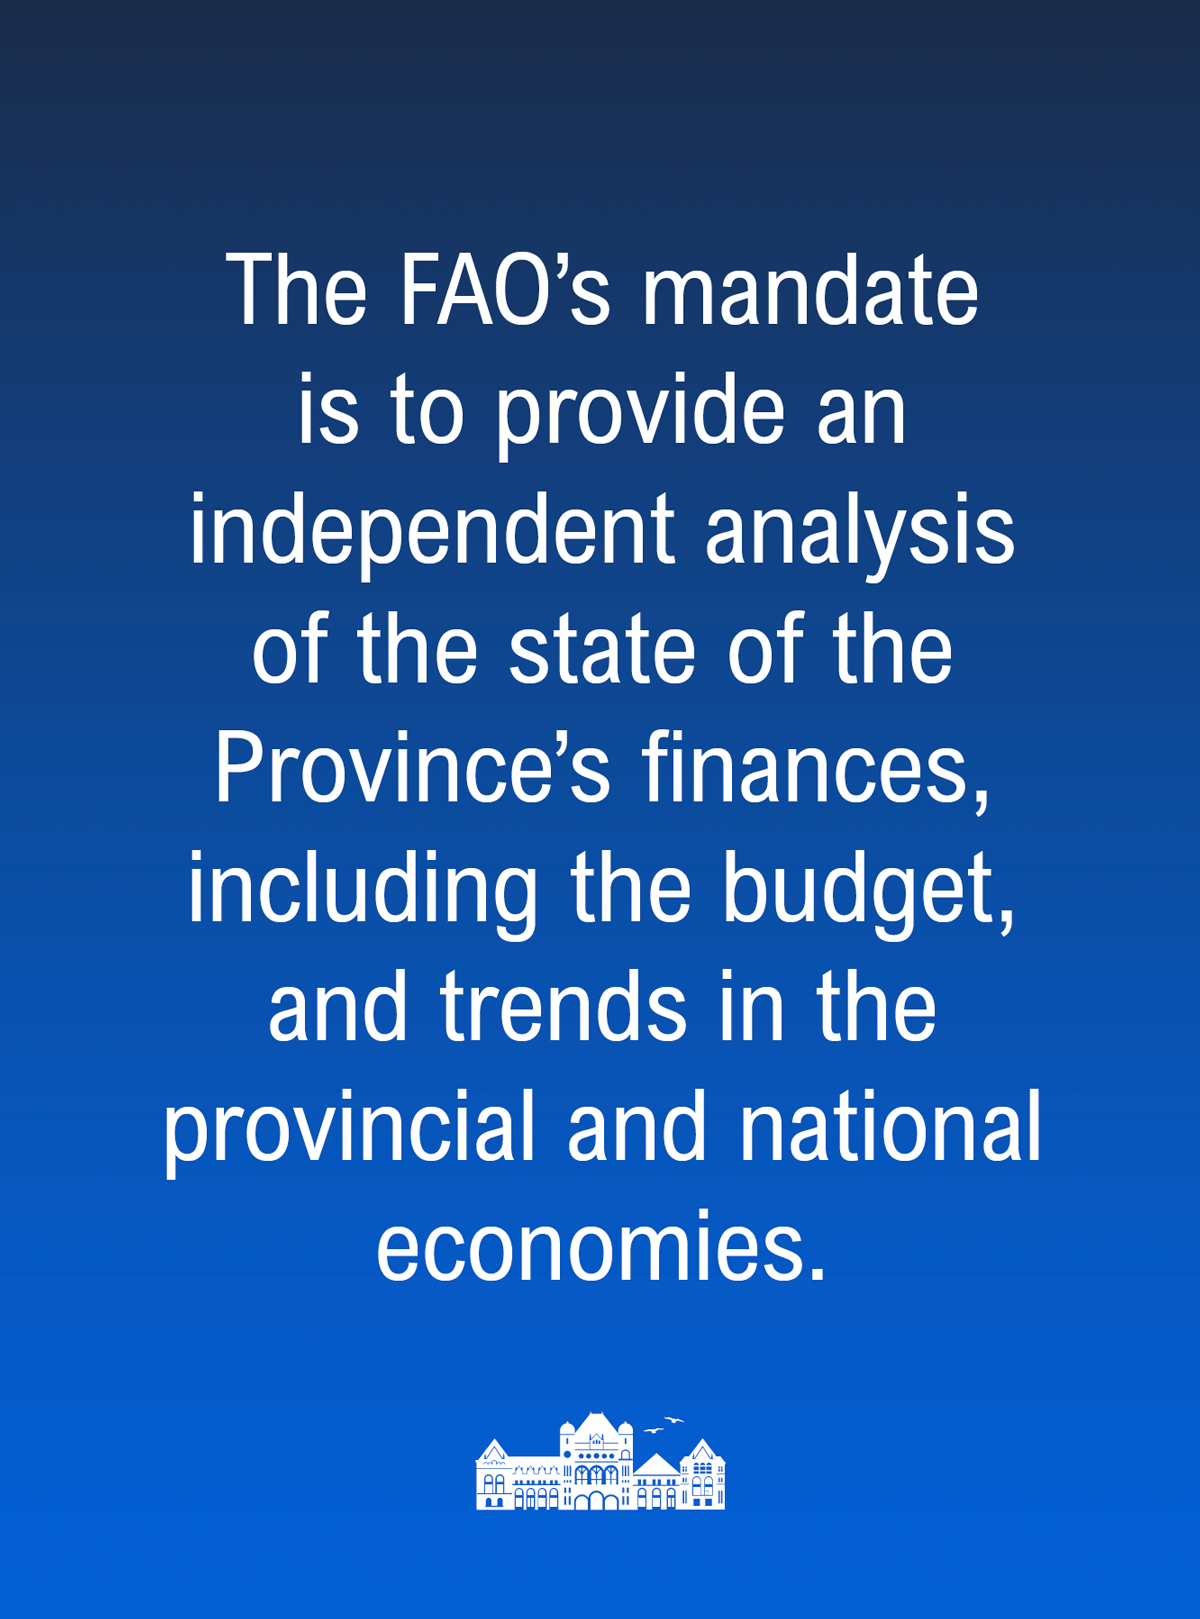 The Financial Accountability Officer's mandate is to provide an independent analysis of the state of the Province's finances, including the budget, and trends in the provincial and national economies.